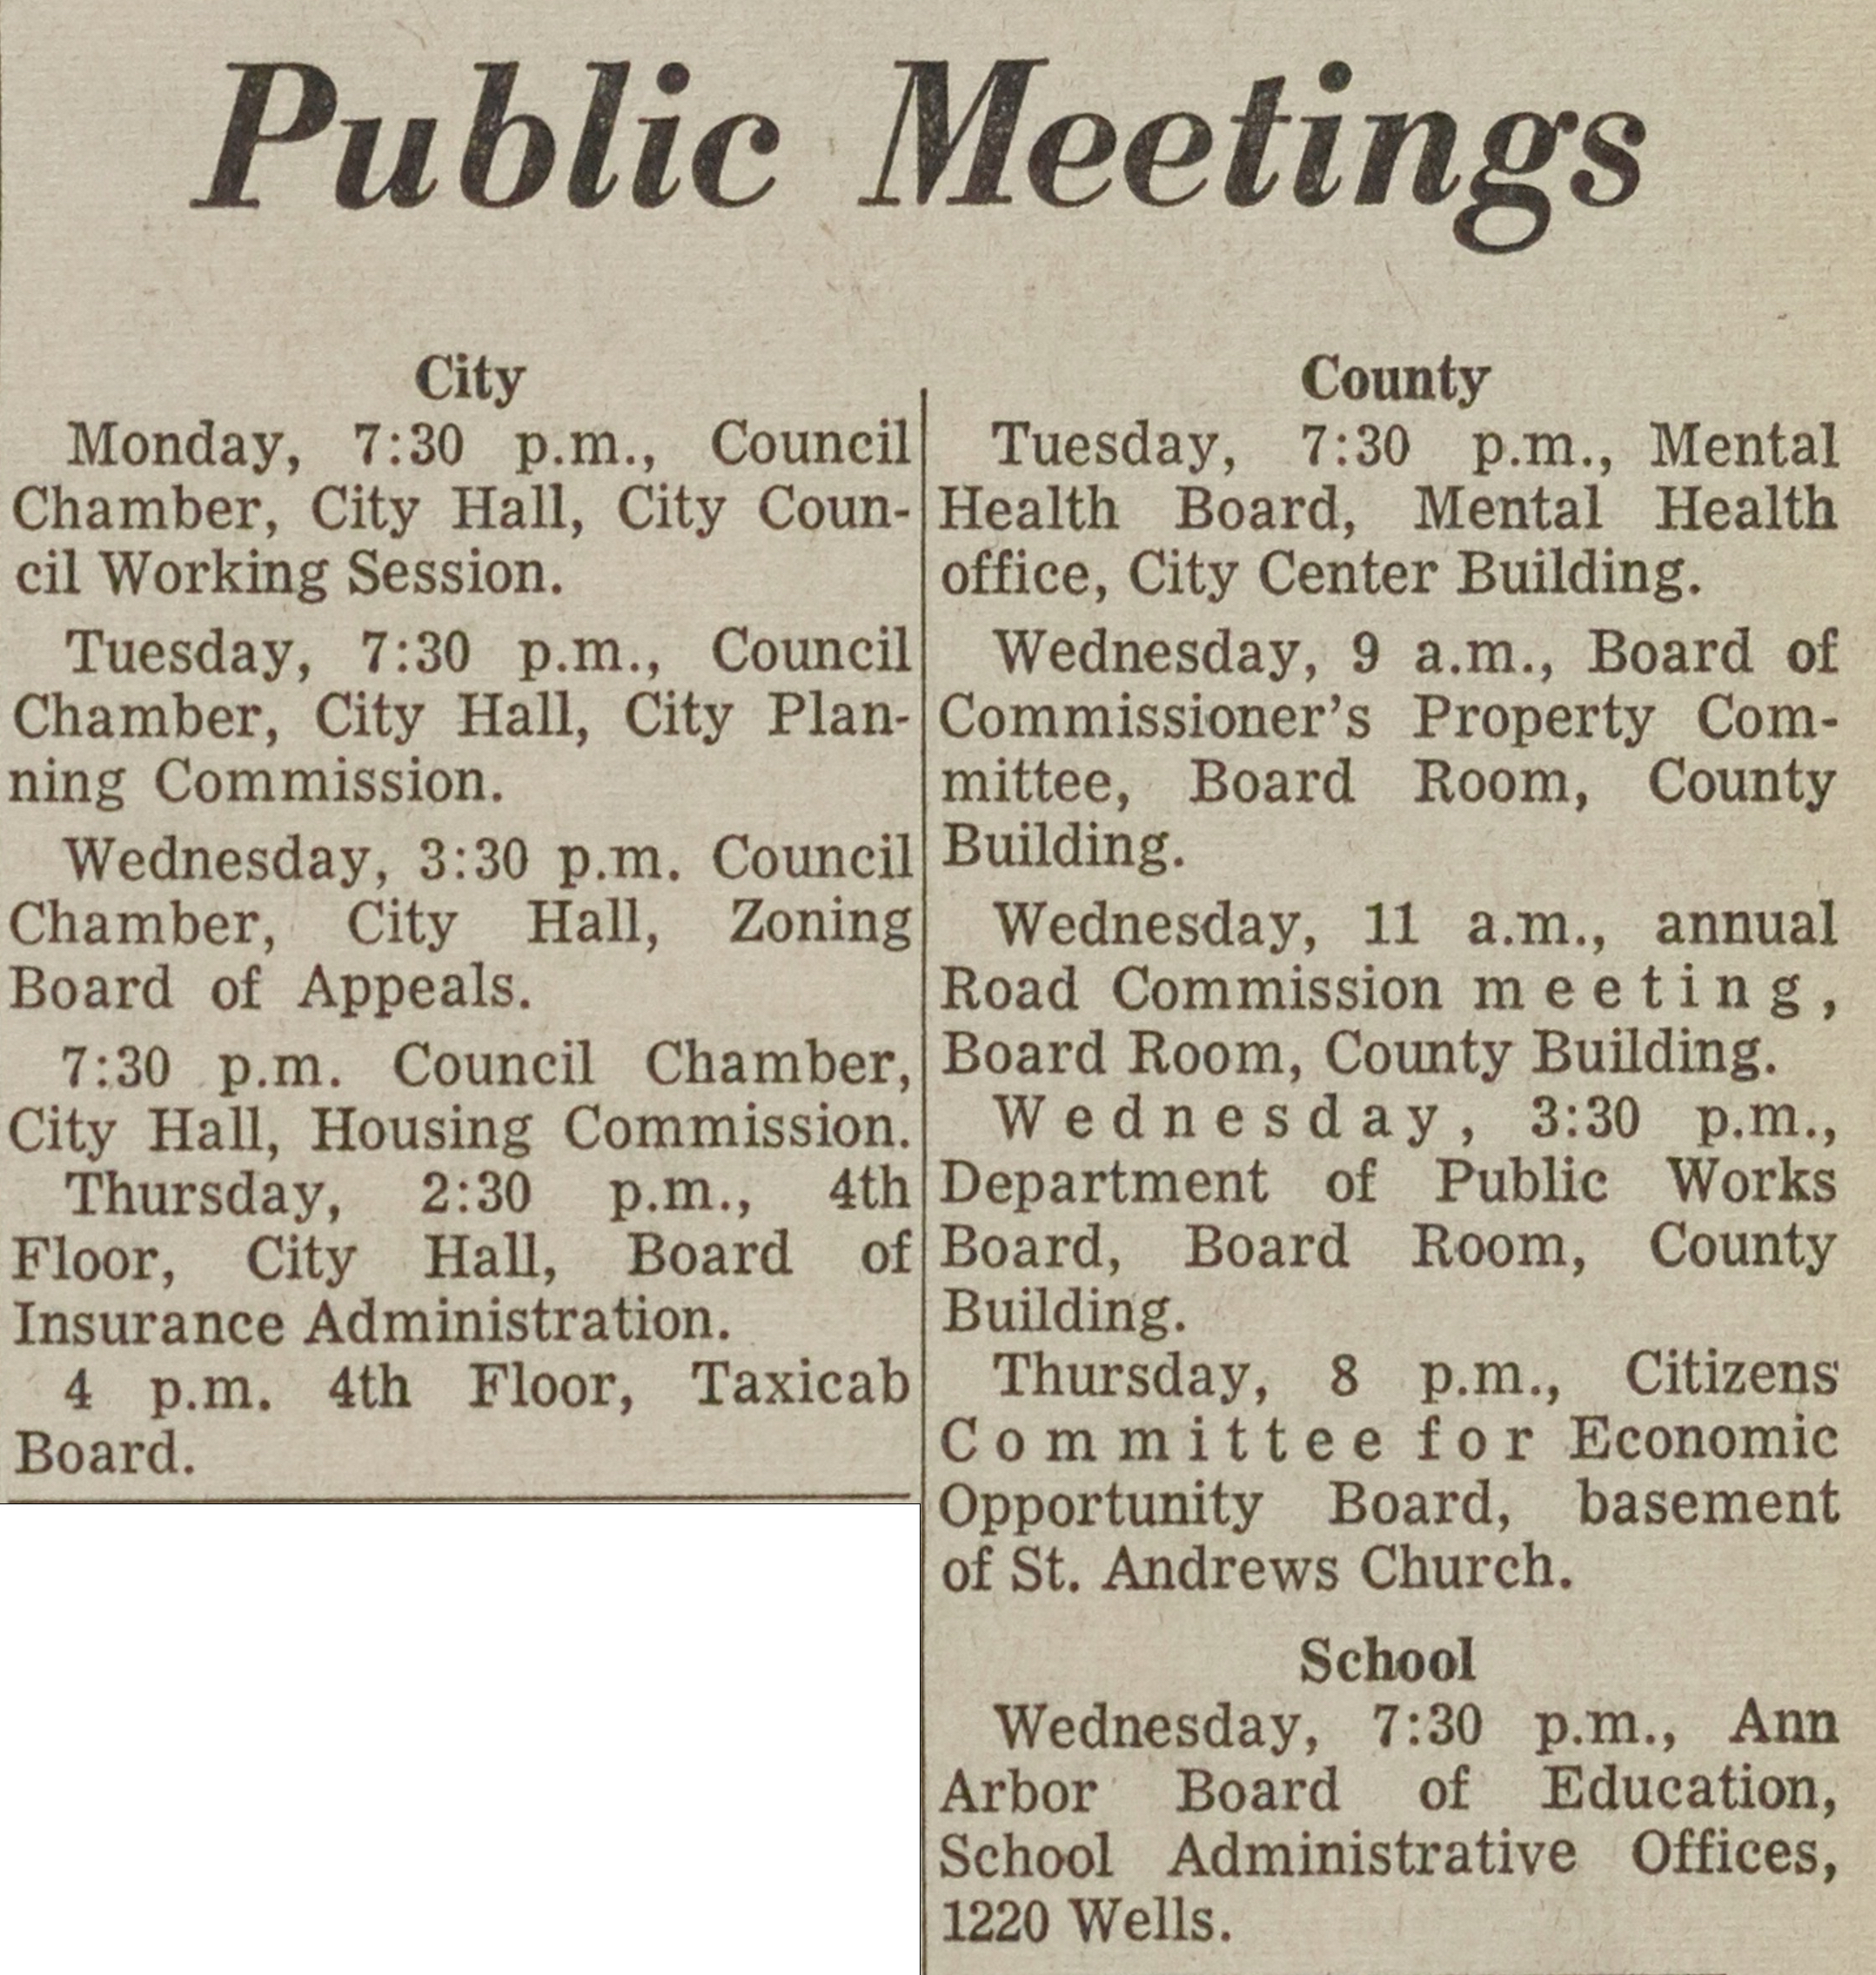 Public Meetings image